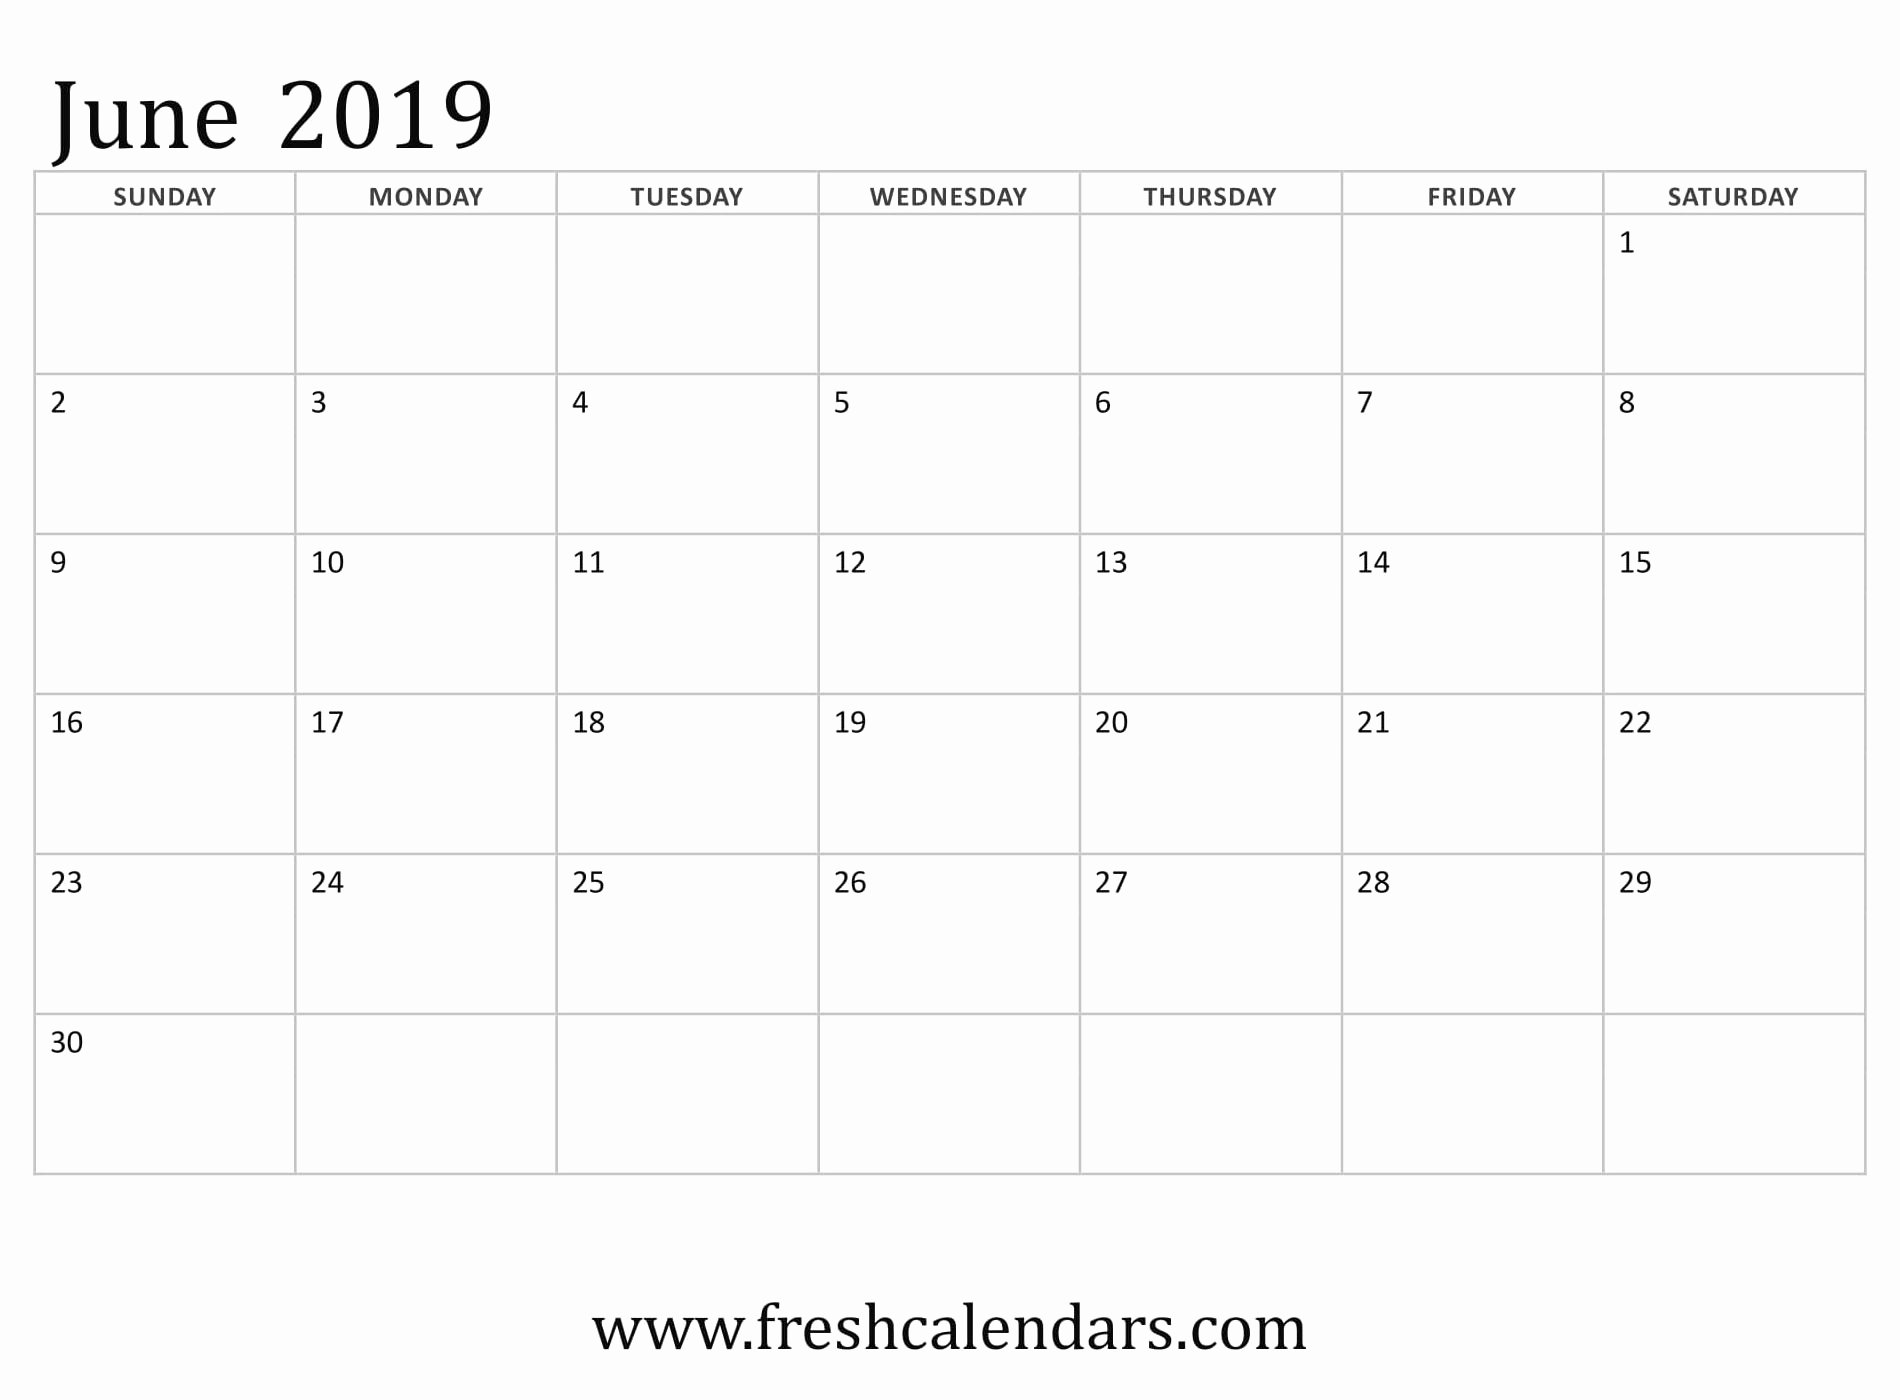 Microsoft Calendar Templates 2019 Awesome June 2019 Calendar Printable Fresh Calendars